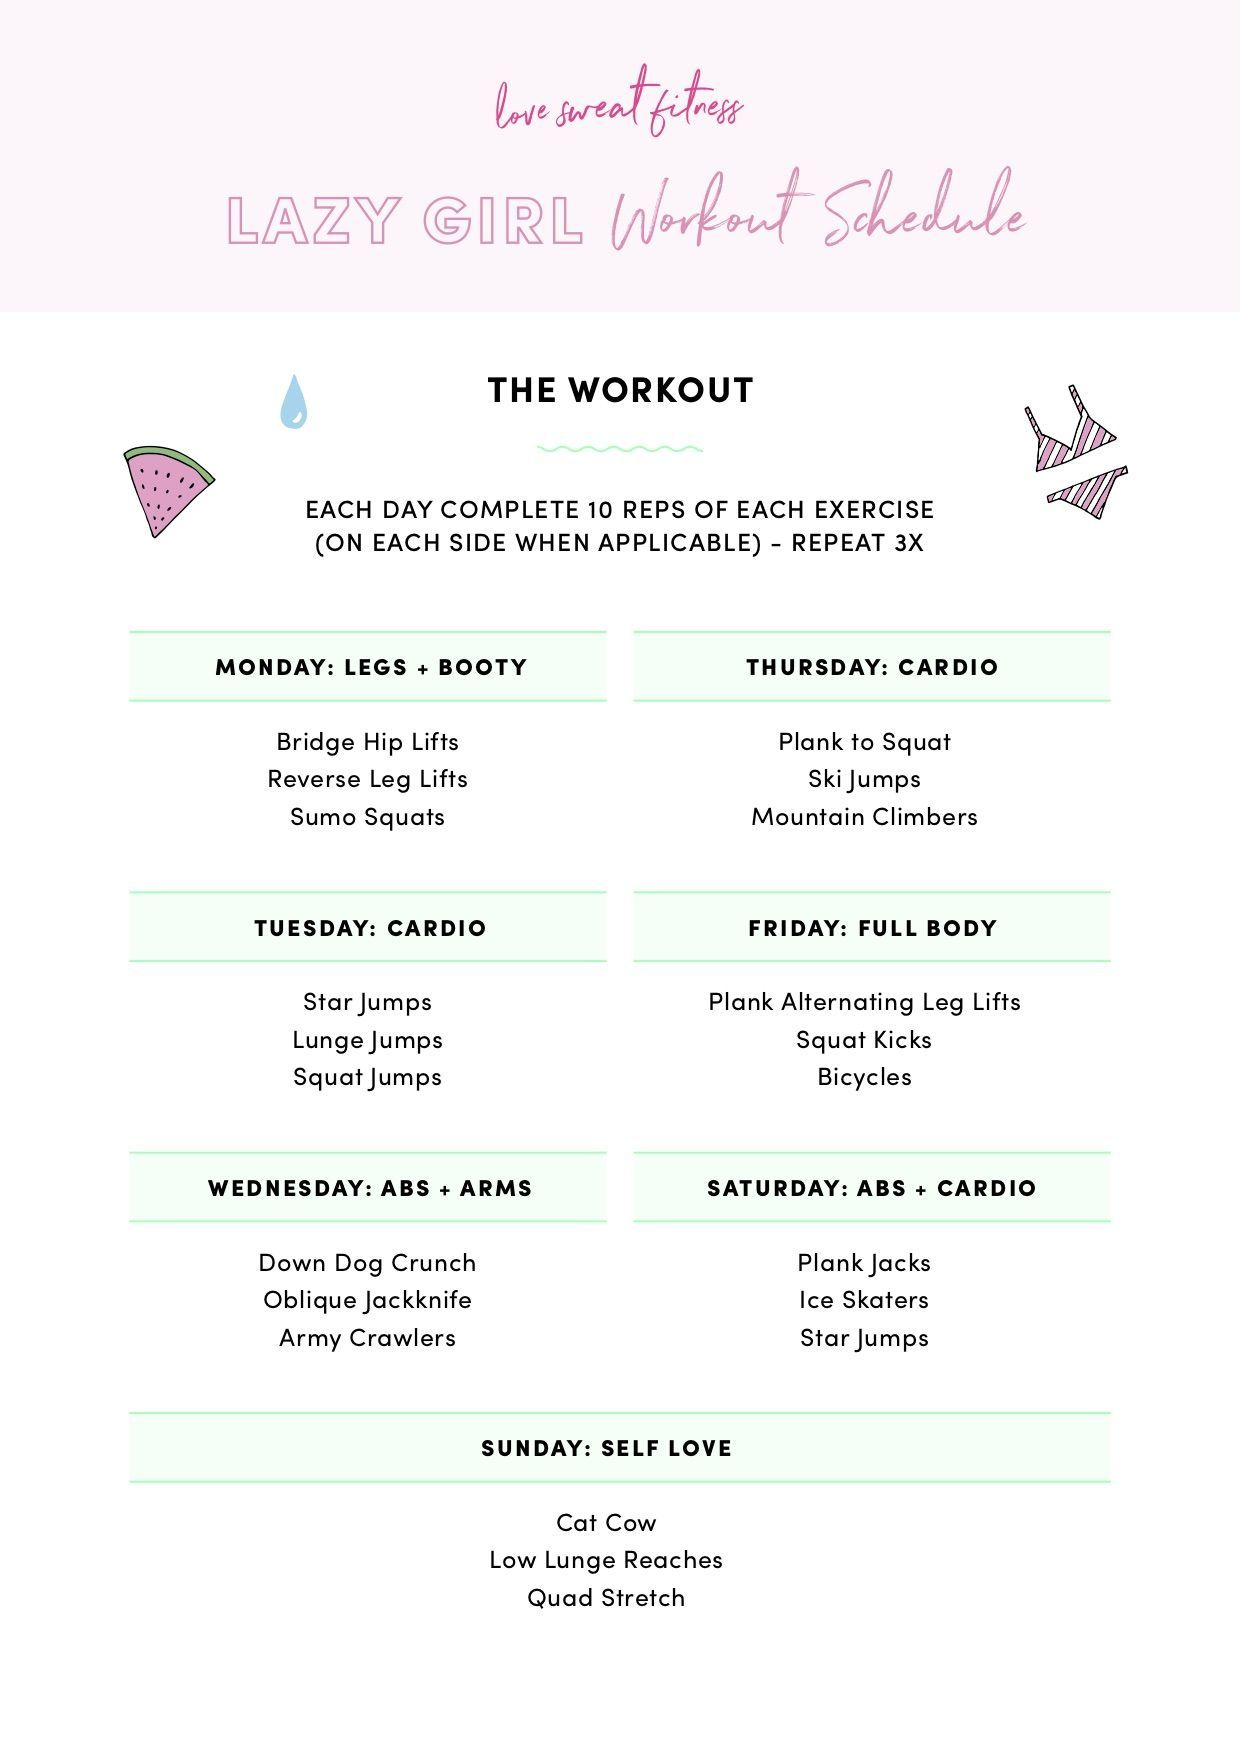 Love Sweat Fitness Lazy Girl Workout Workout Schedule Love Sweat Fitness